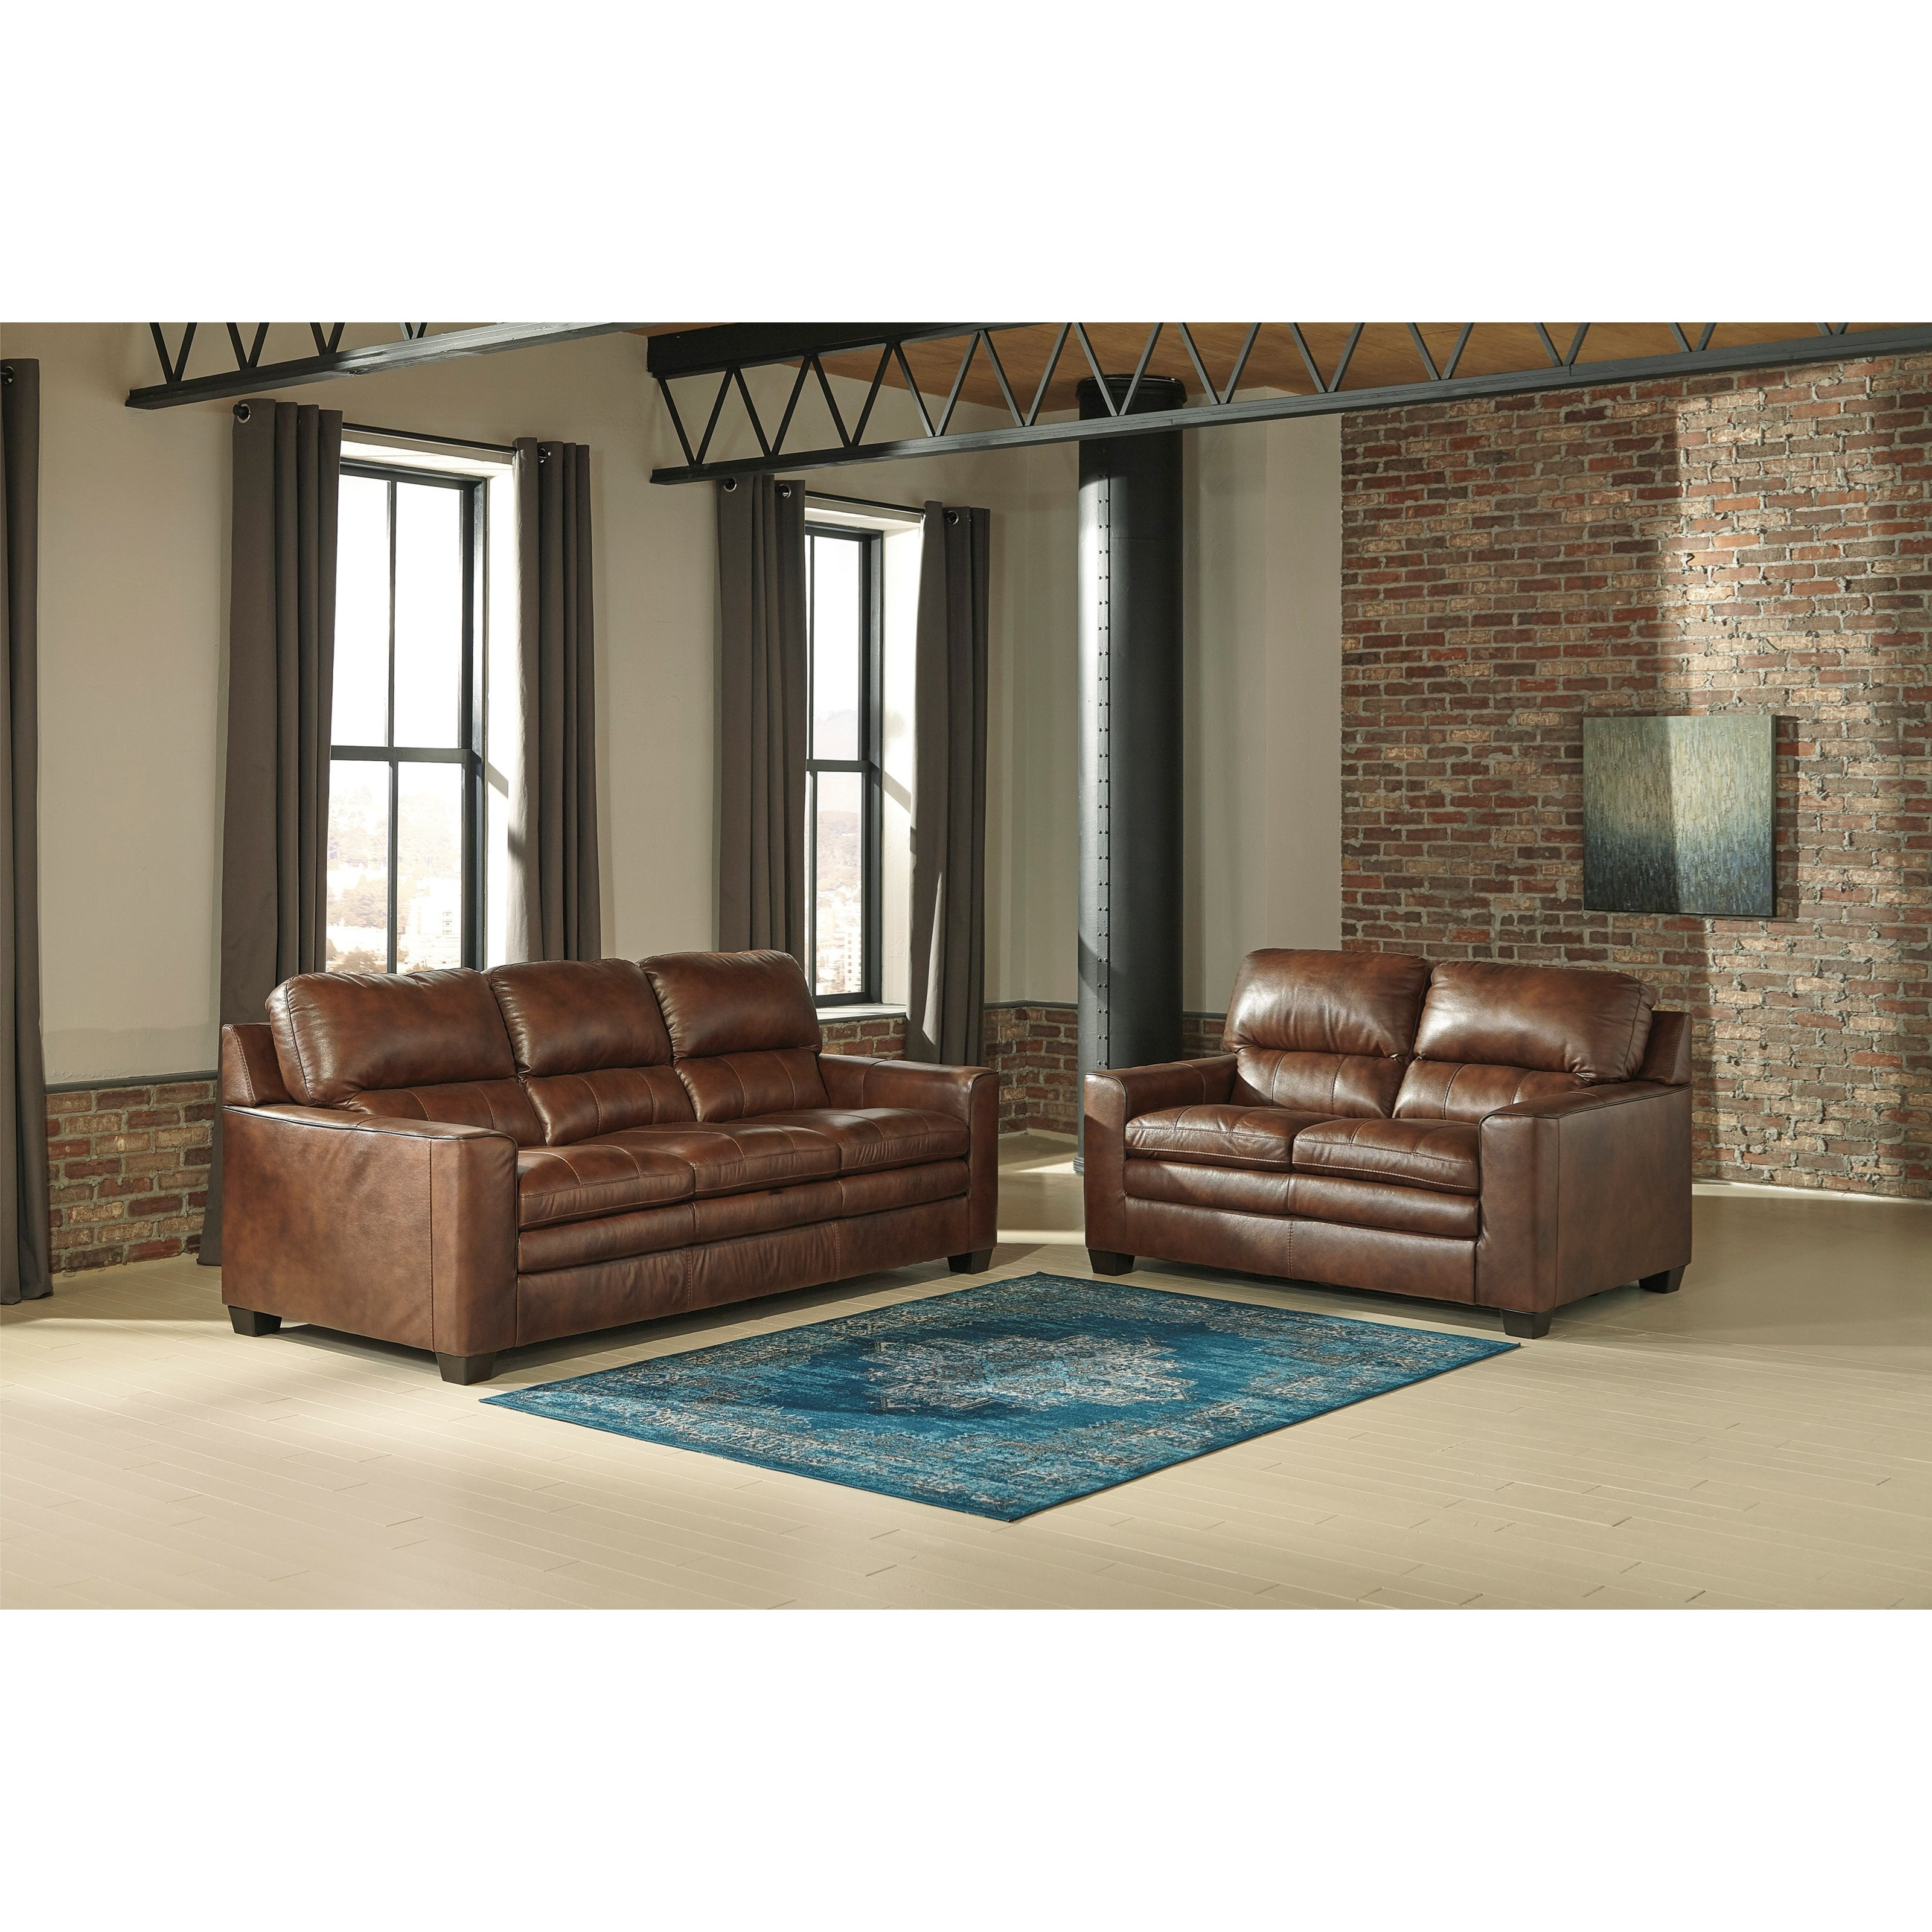 Signature Design By Ashley Gleason Stationary Living Room Group Household Furniture